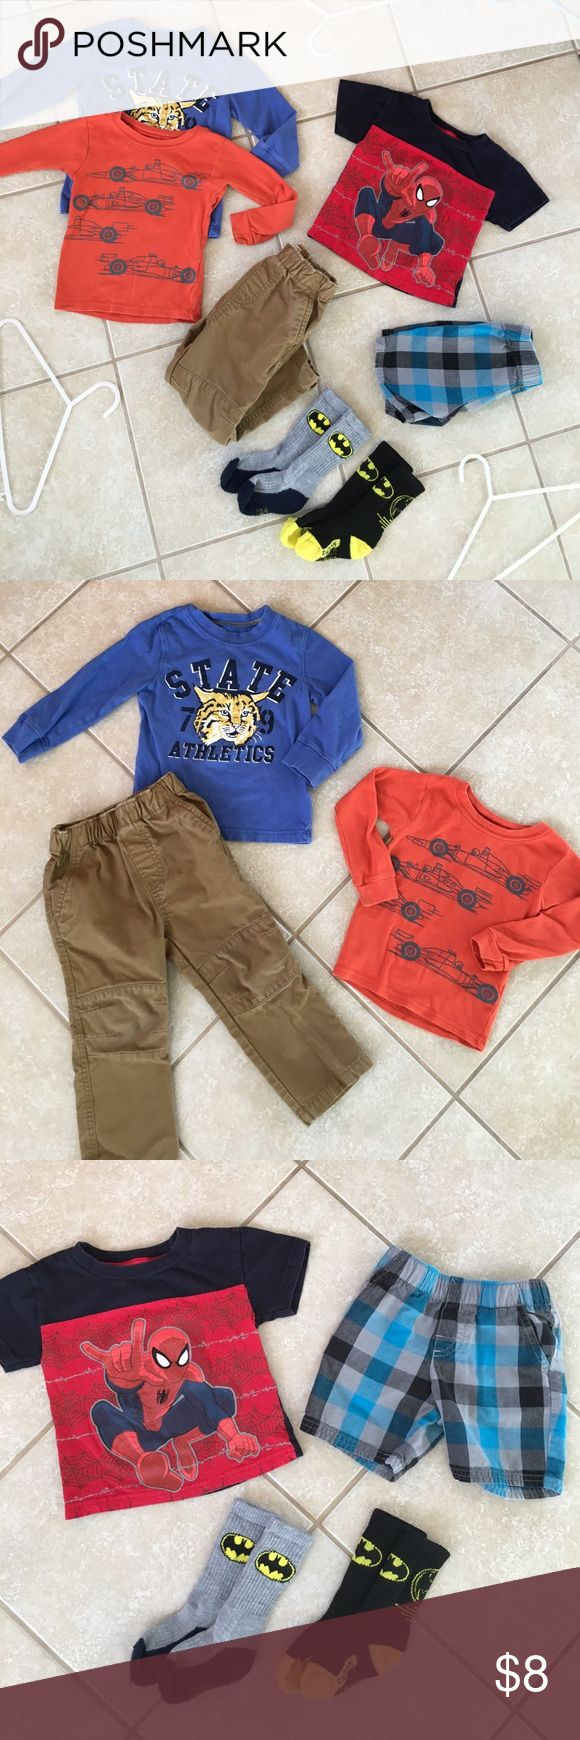 7pc. Toddler Bundle size 2T 7pc. Boys bundle for Toddlers size 2T. Includes: 2 long sleeve tees, 1 short sleeve tee, 1 pair thick utility pants, 1 pair shorts, and 2 pairs Batman socks. Everything in excellent condition. Comes from smoke free home. Check out my closet for more children's items to bundle and save! Matching Sets